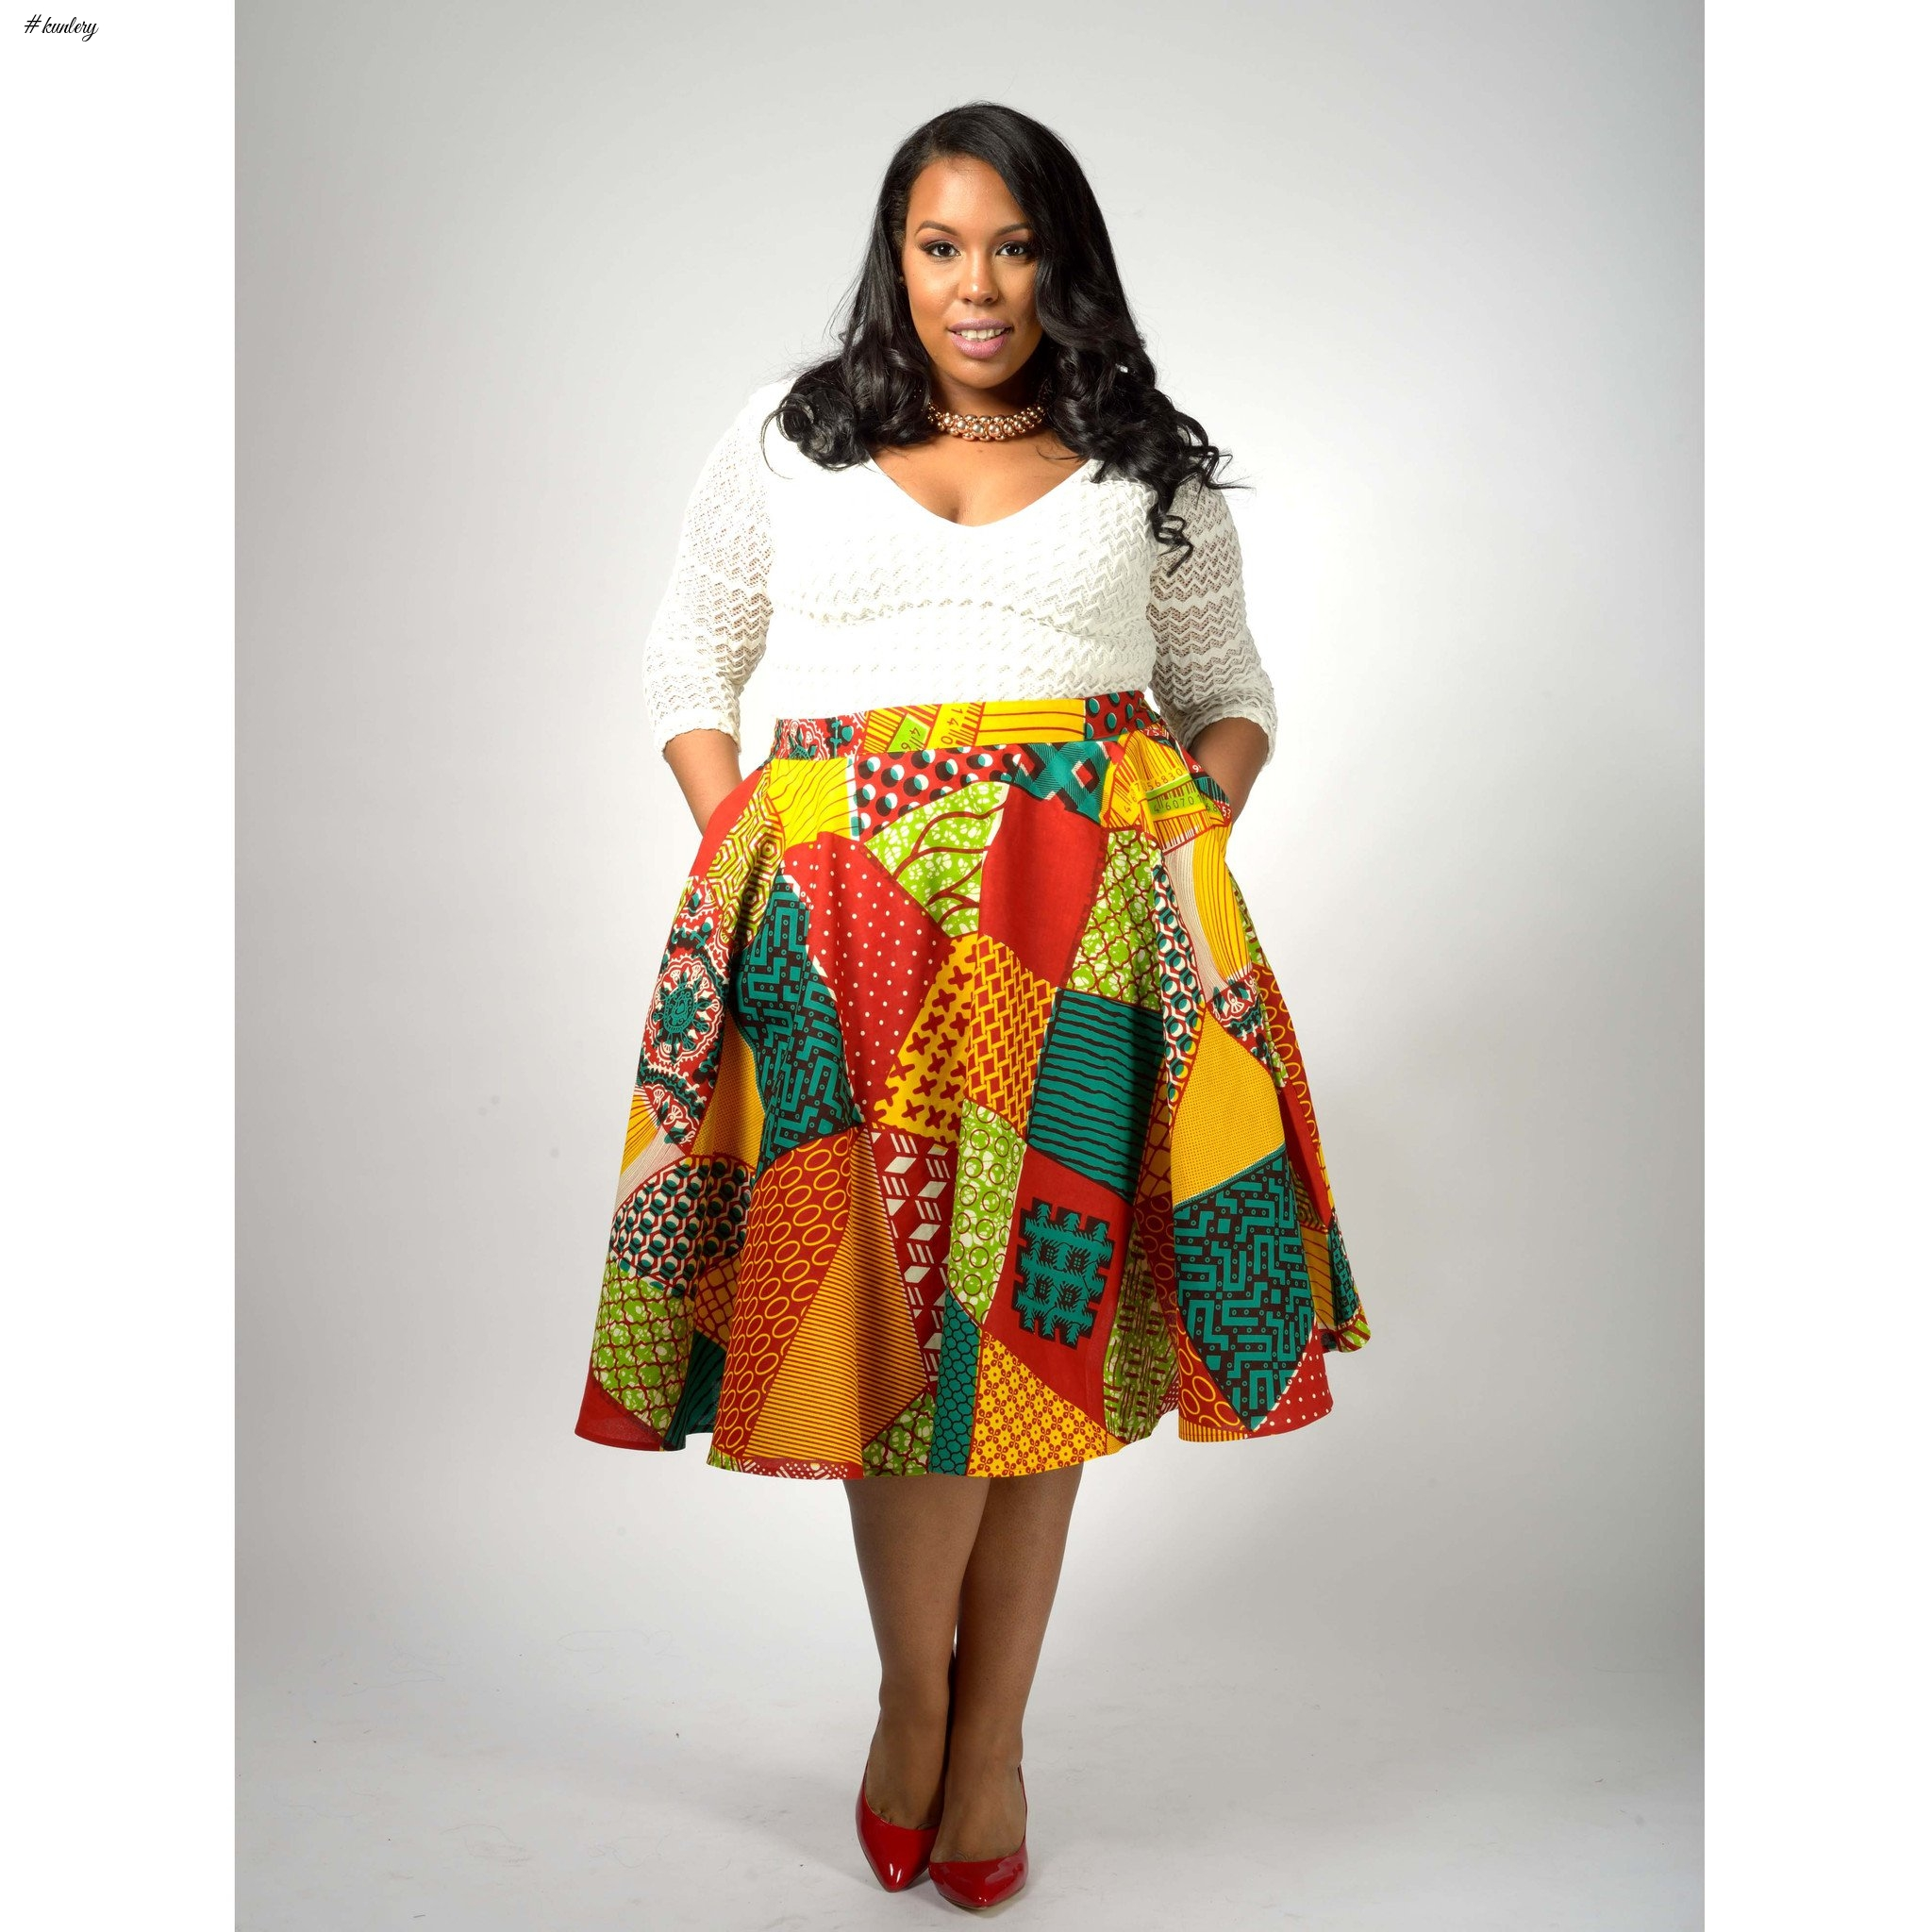 FULL-FIGURED AND FAB: ANKARA OUTFITS FOR CONFIDENCE